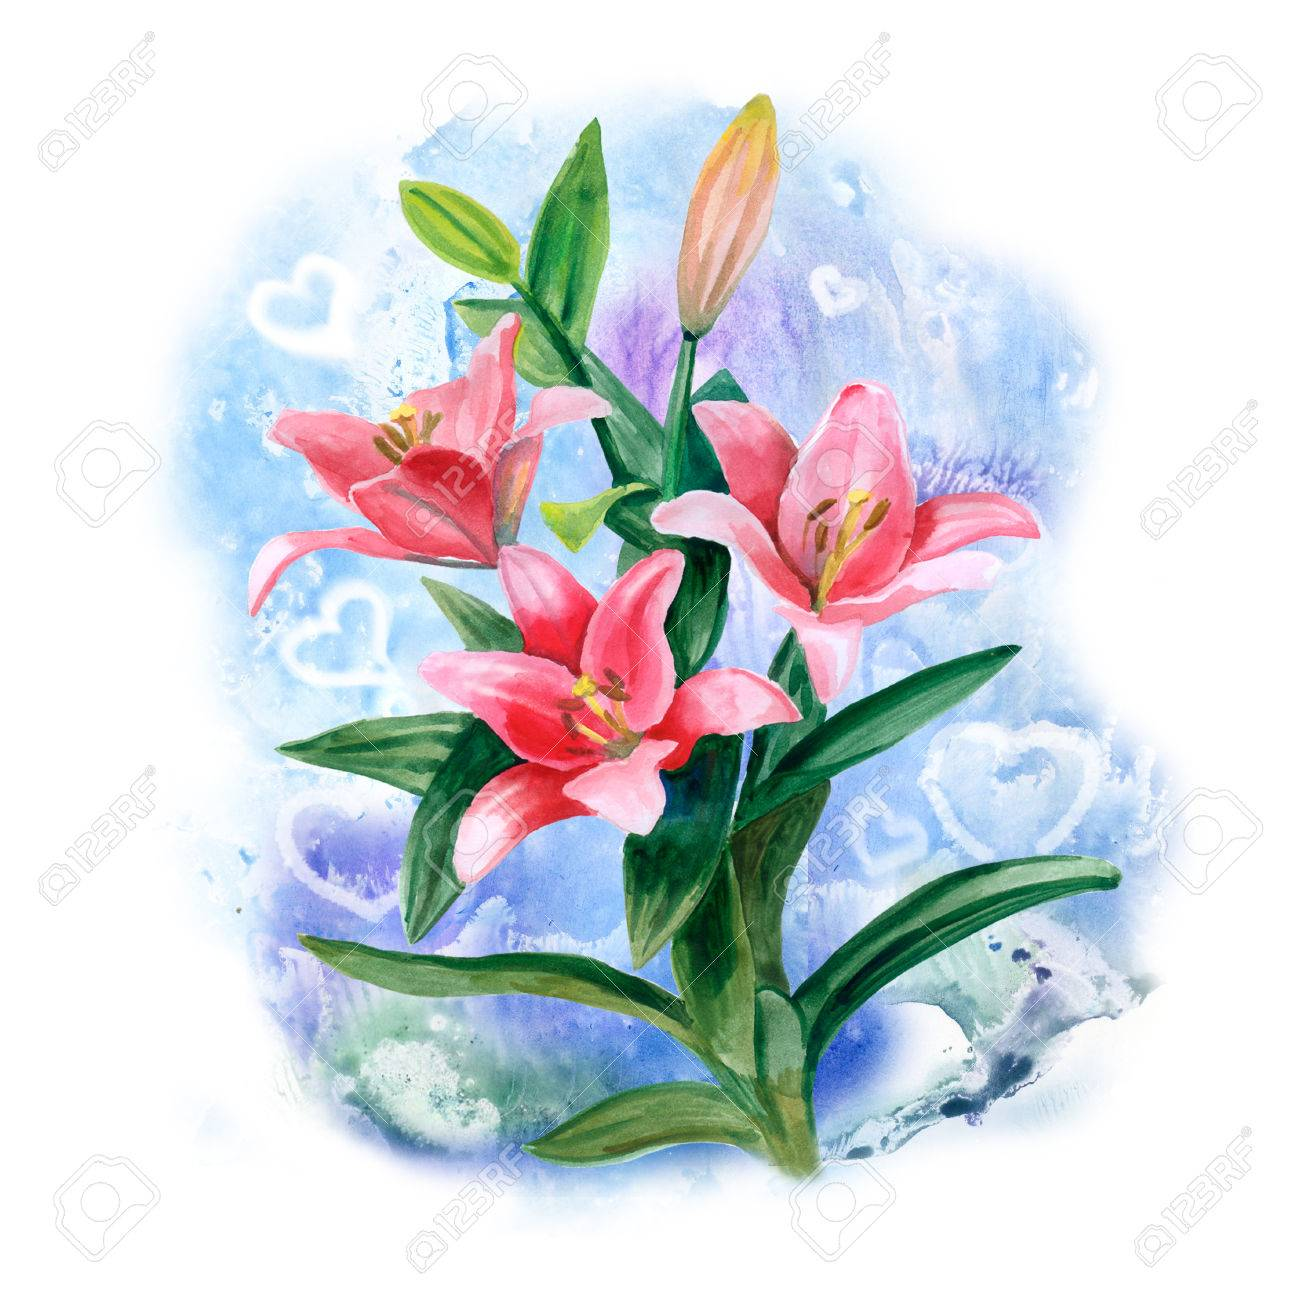 Hand Drawn Watercolor Lily Flowers Isolated On Blue Background